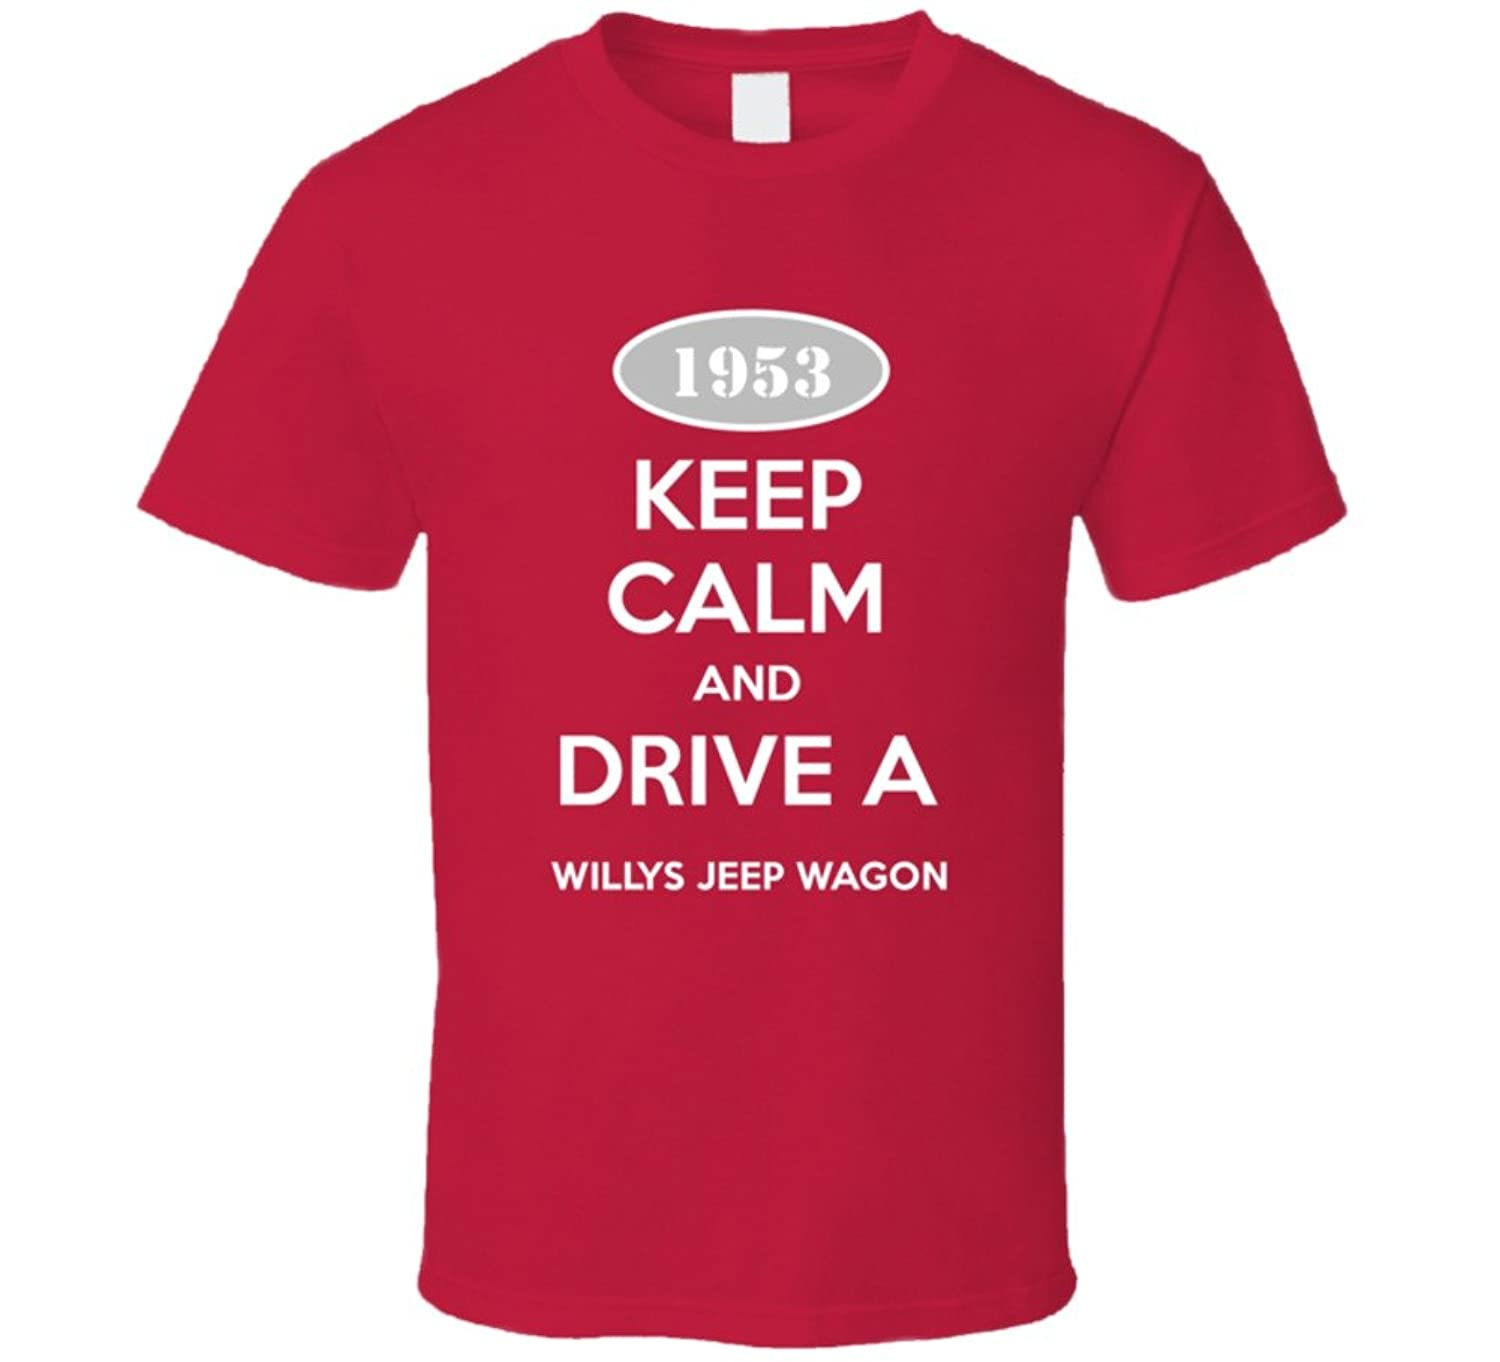 Keep Calm And Drive A 1953 Willys Jeep Wagon Funny T Shirt